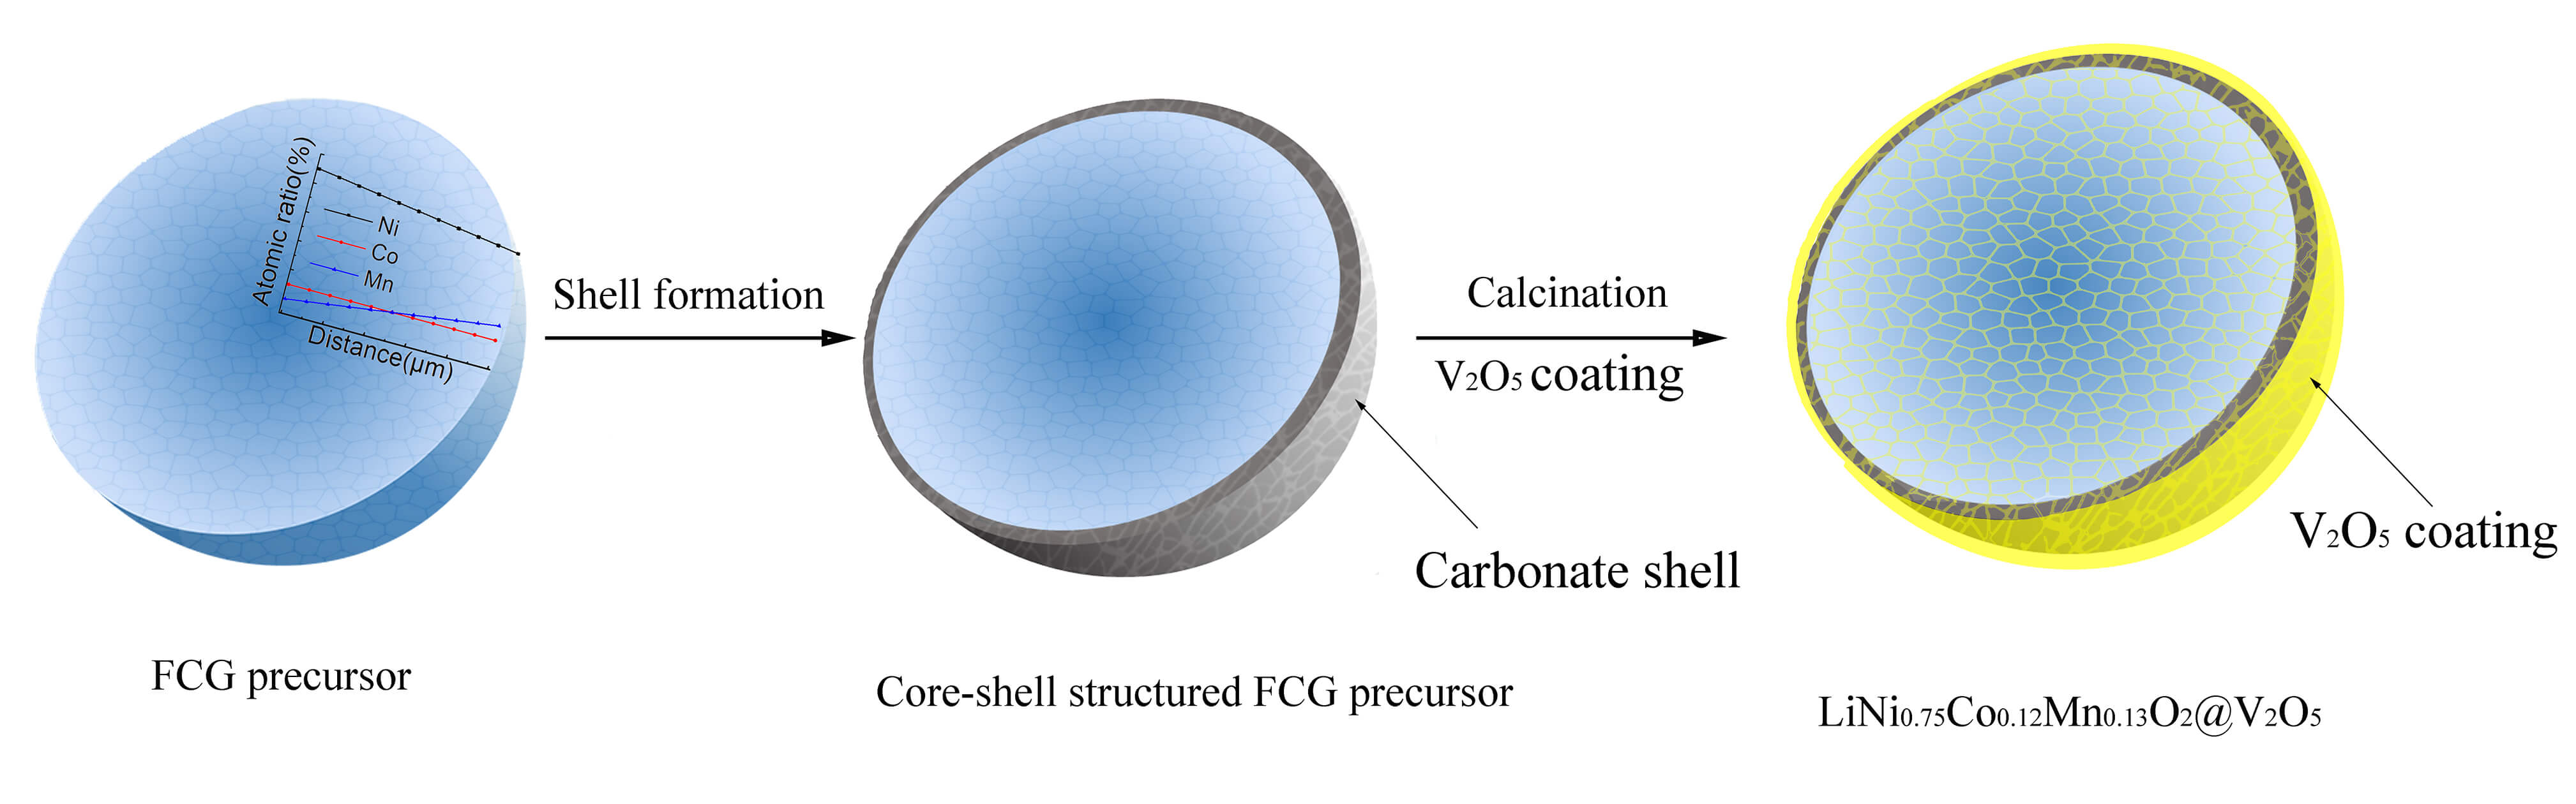 A Novel Core-shell Structured Nickel-rich Layered Cathode Material for High-energy Lithium-ion Batteries